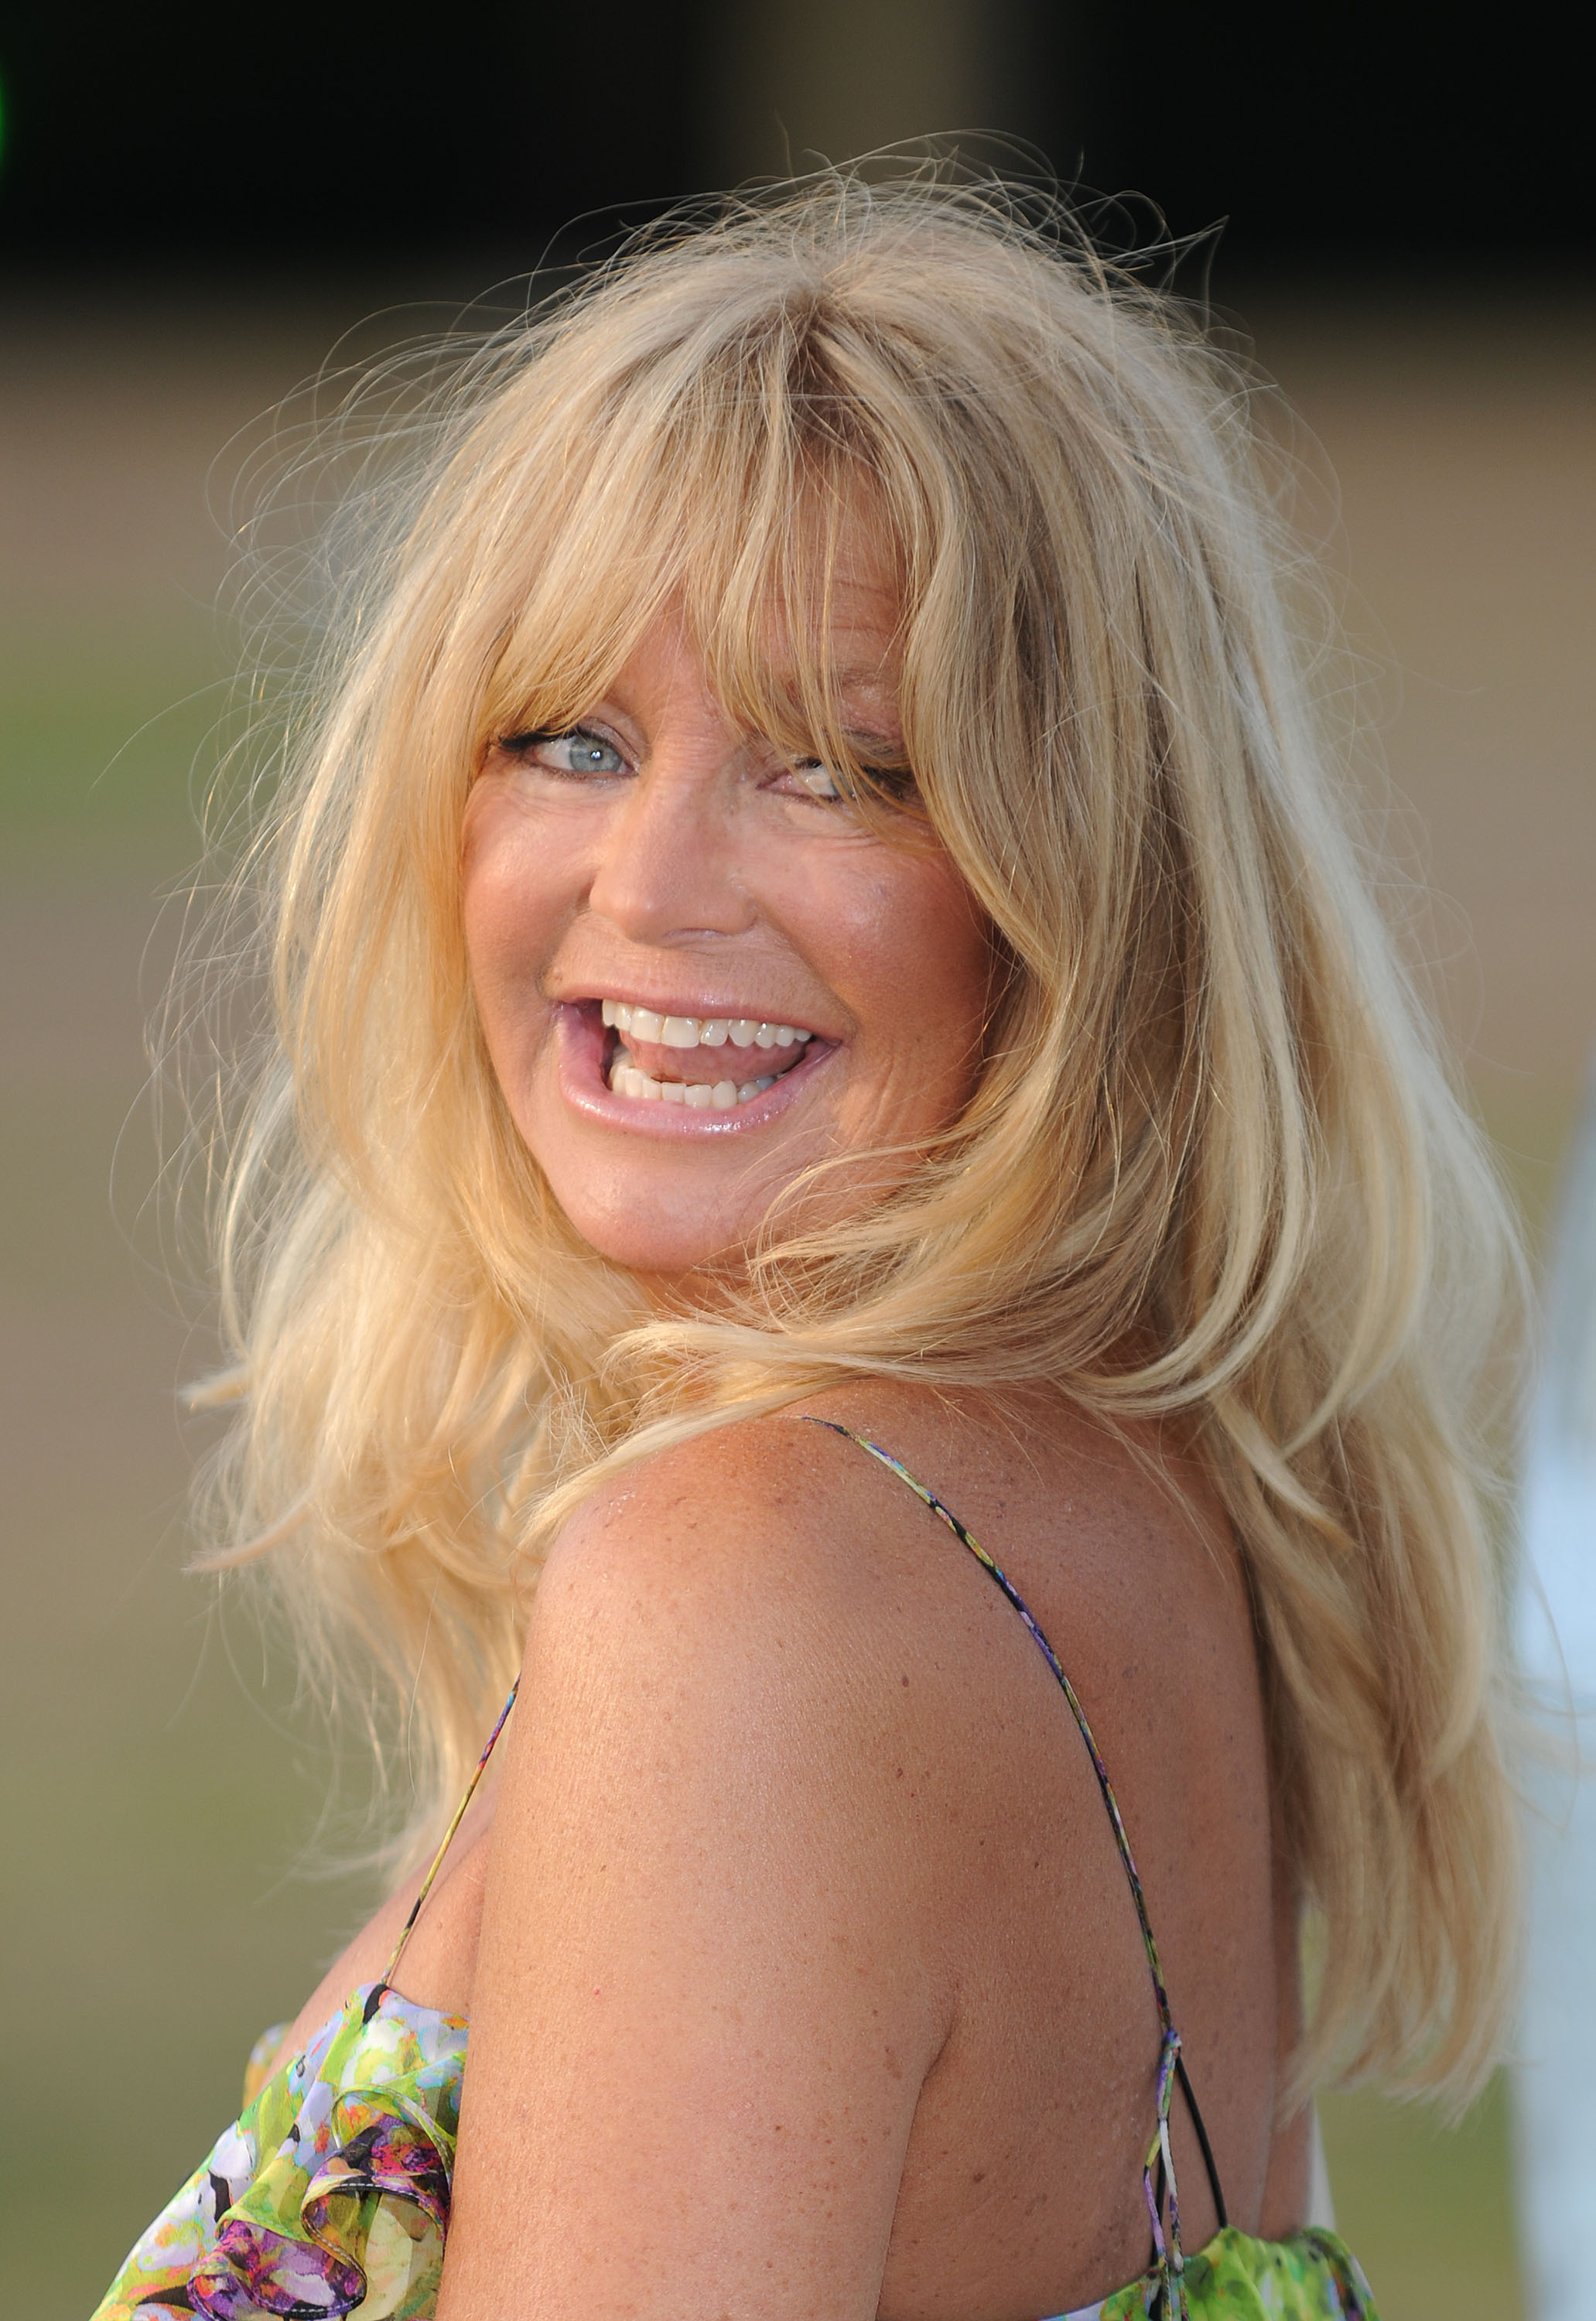 Tagged wallpapers amp backgrounds - Goldie Hawn Wallpaper Pictures To Pin On Pinterest